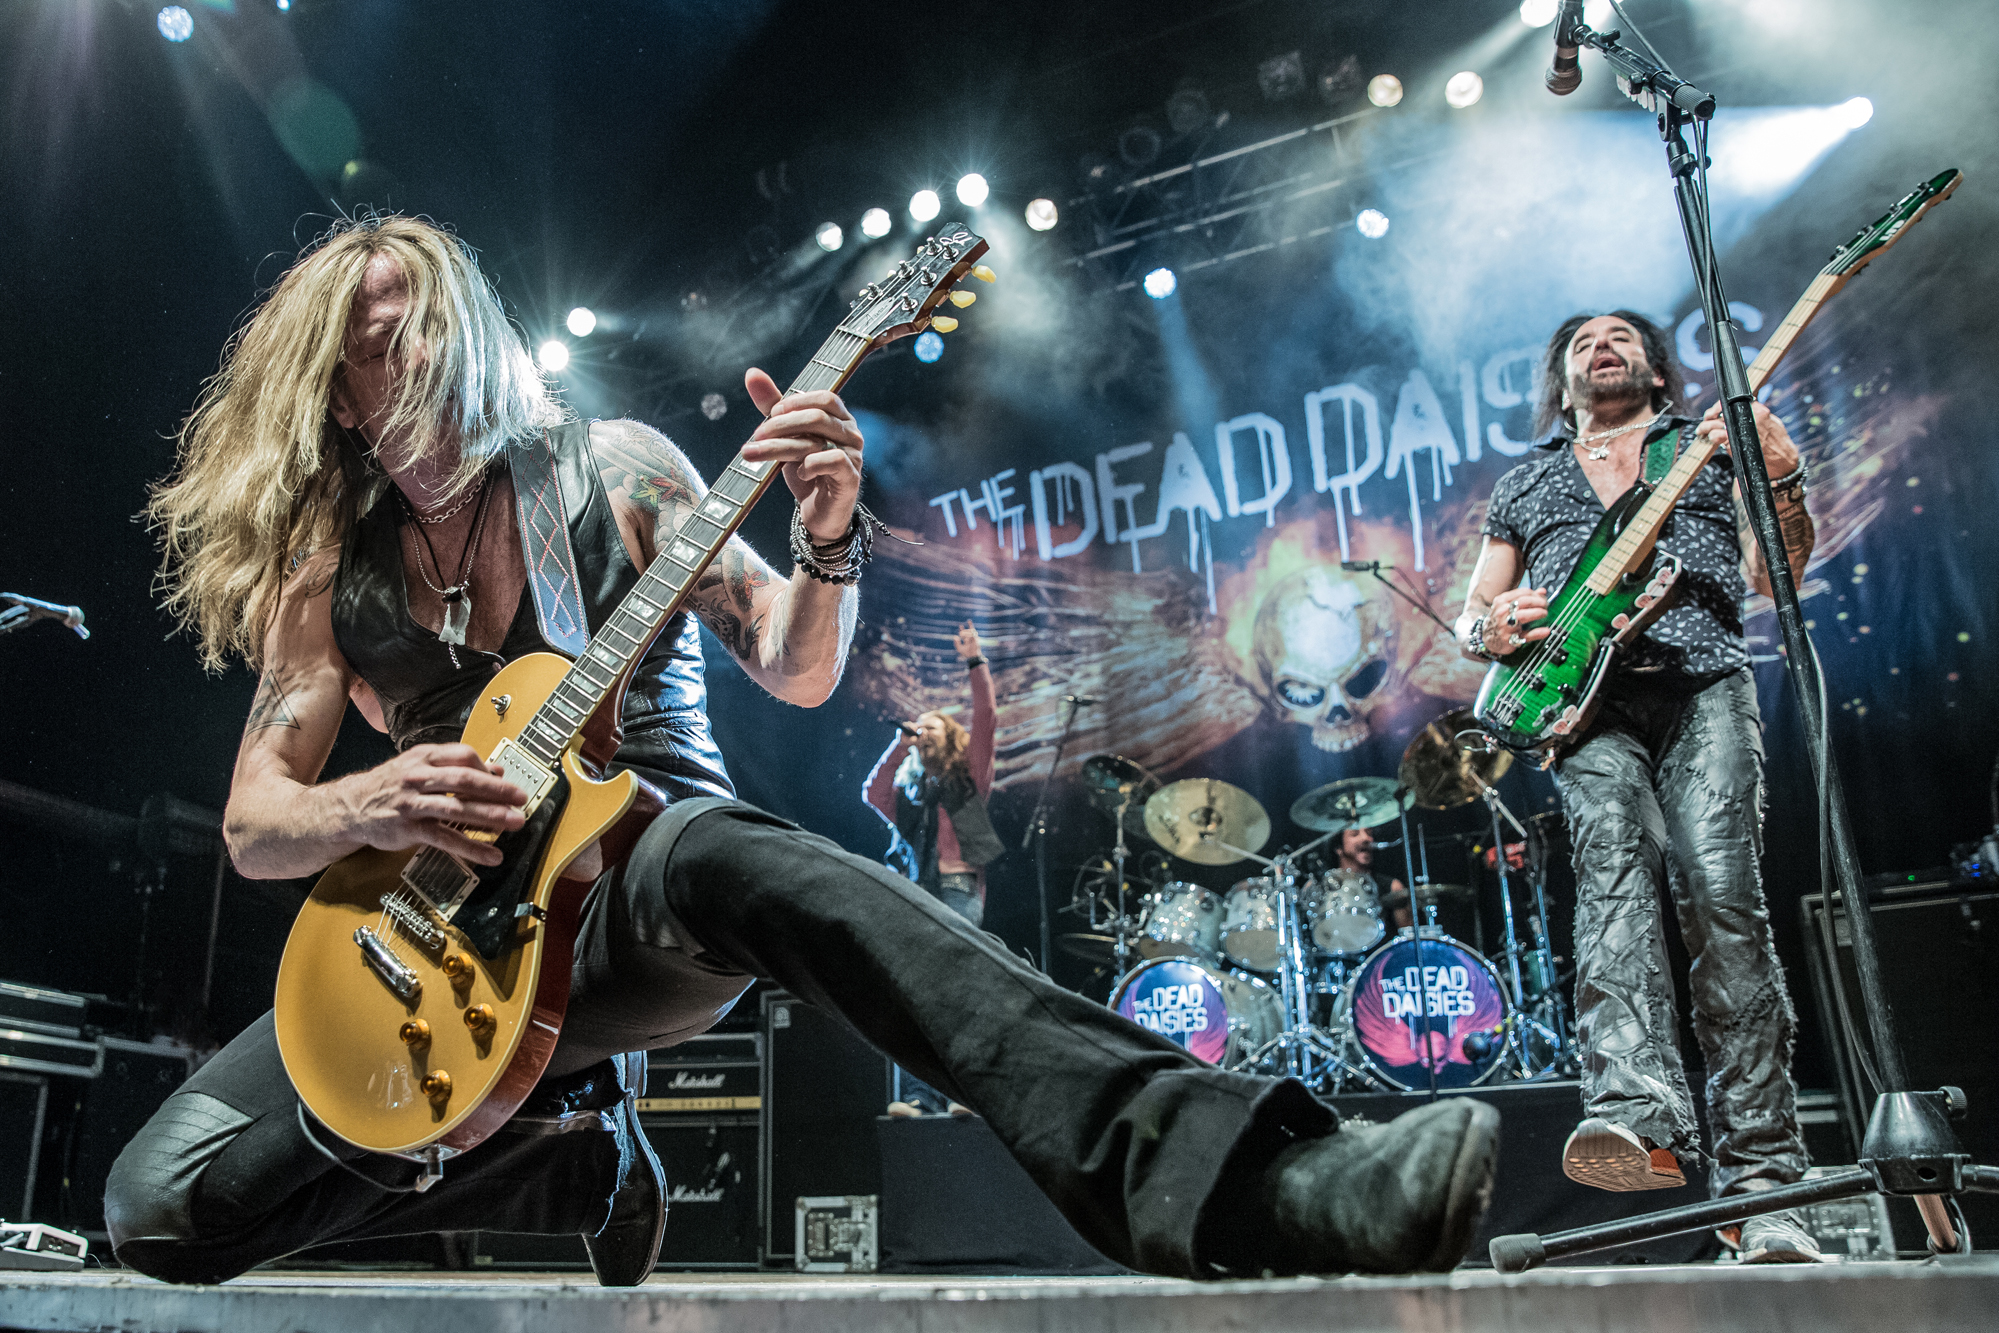 The dead daisies NW 3